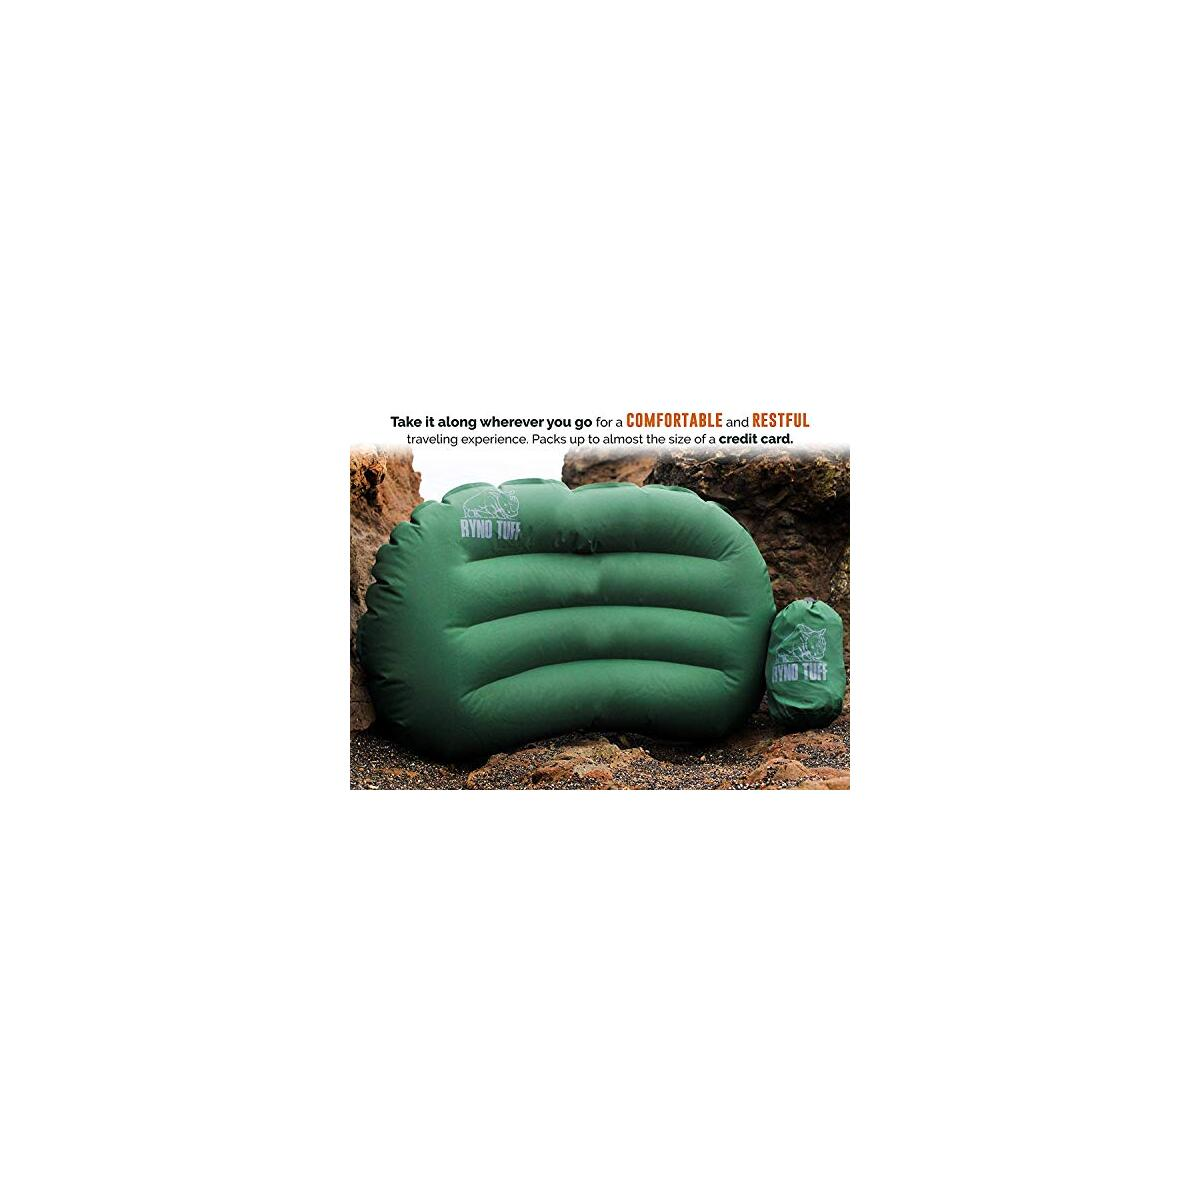 Ryno Tuff Inflatable Camping Pillow - Ultralight Travel Pillow with Knitted Fabric Perfect Pillow for Backpacking, Hiking Or Traveling